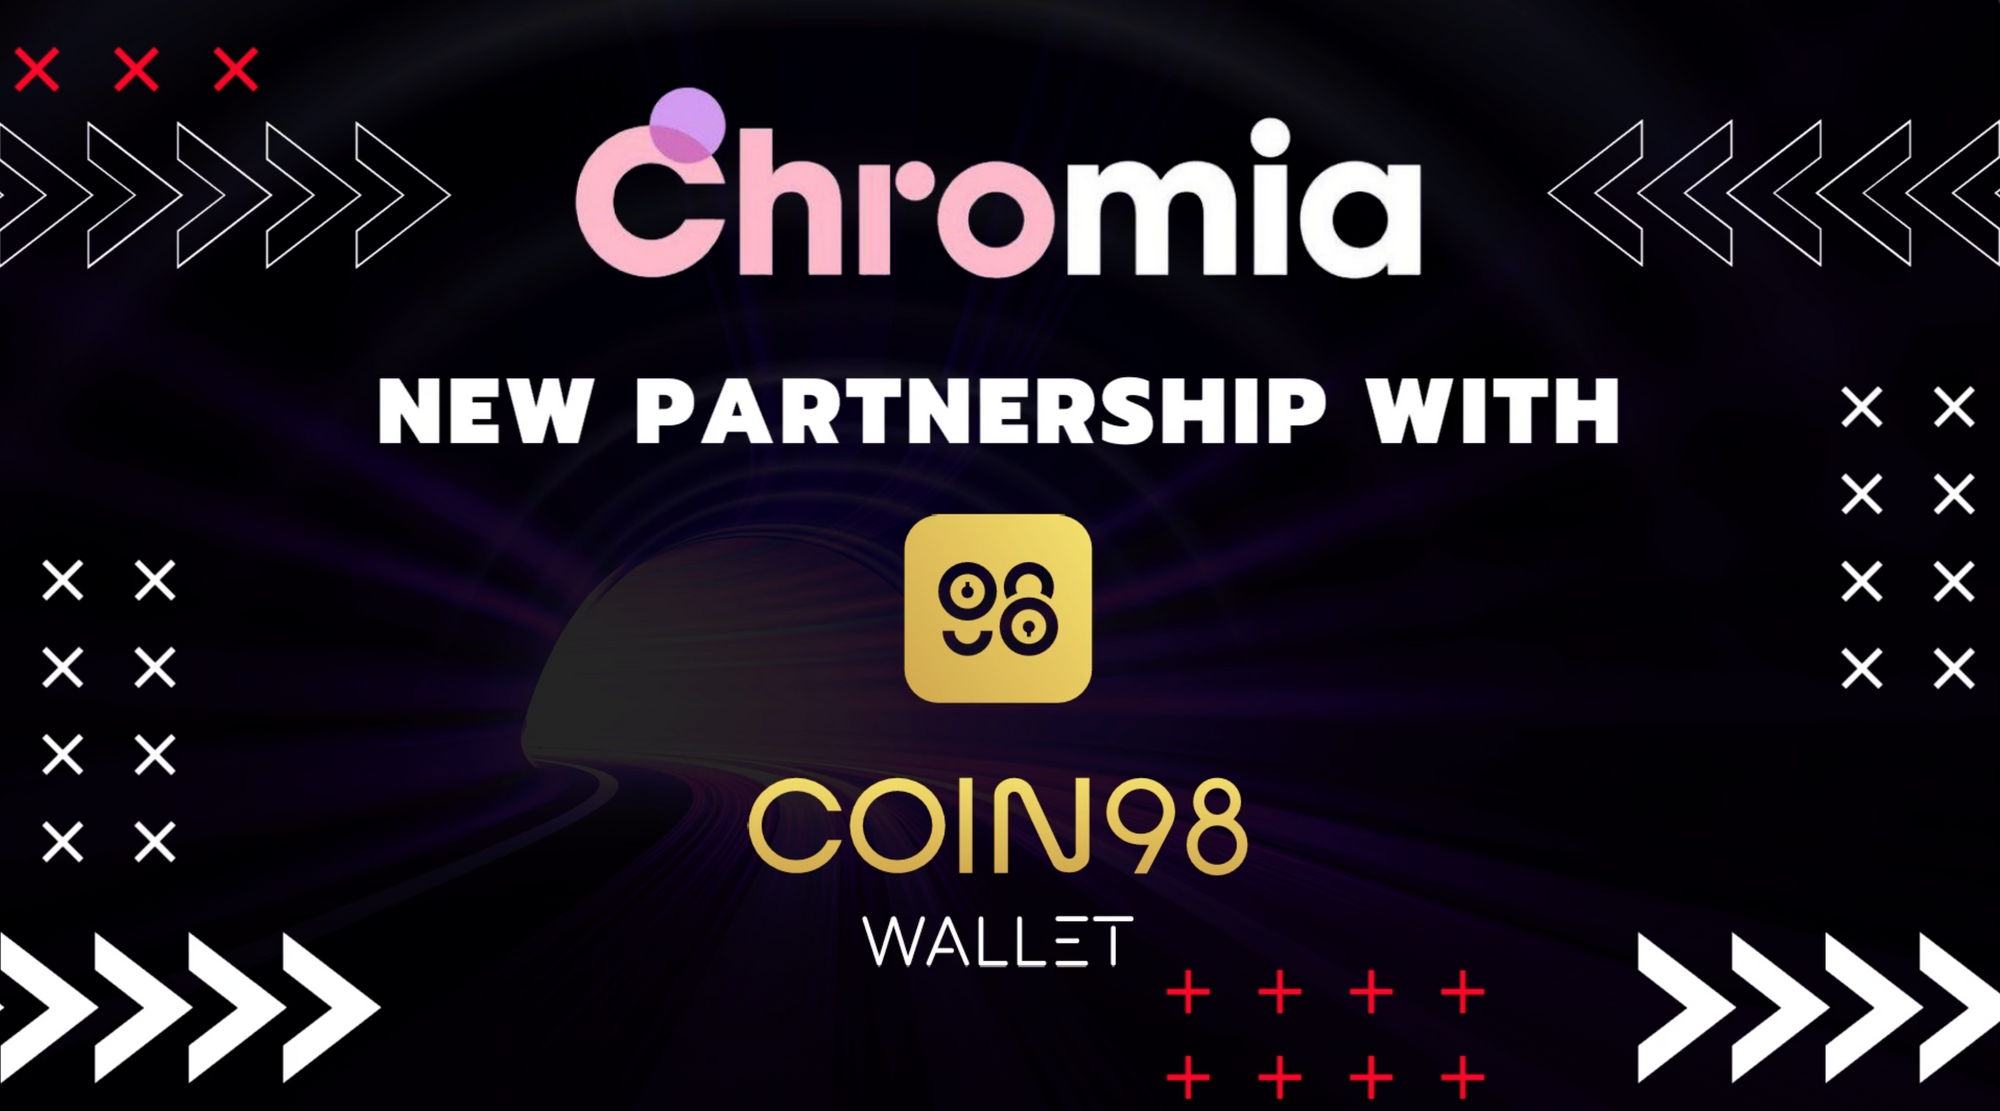 Chromia partners with Coin98 Wallet to Accelerate Defi, Development, and Adoption